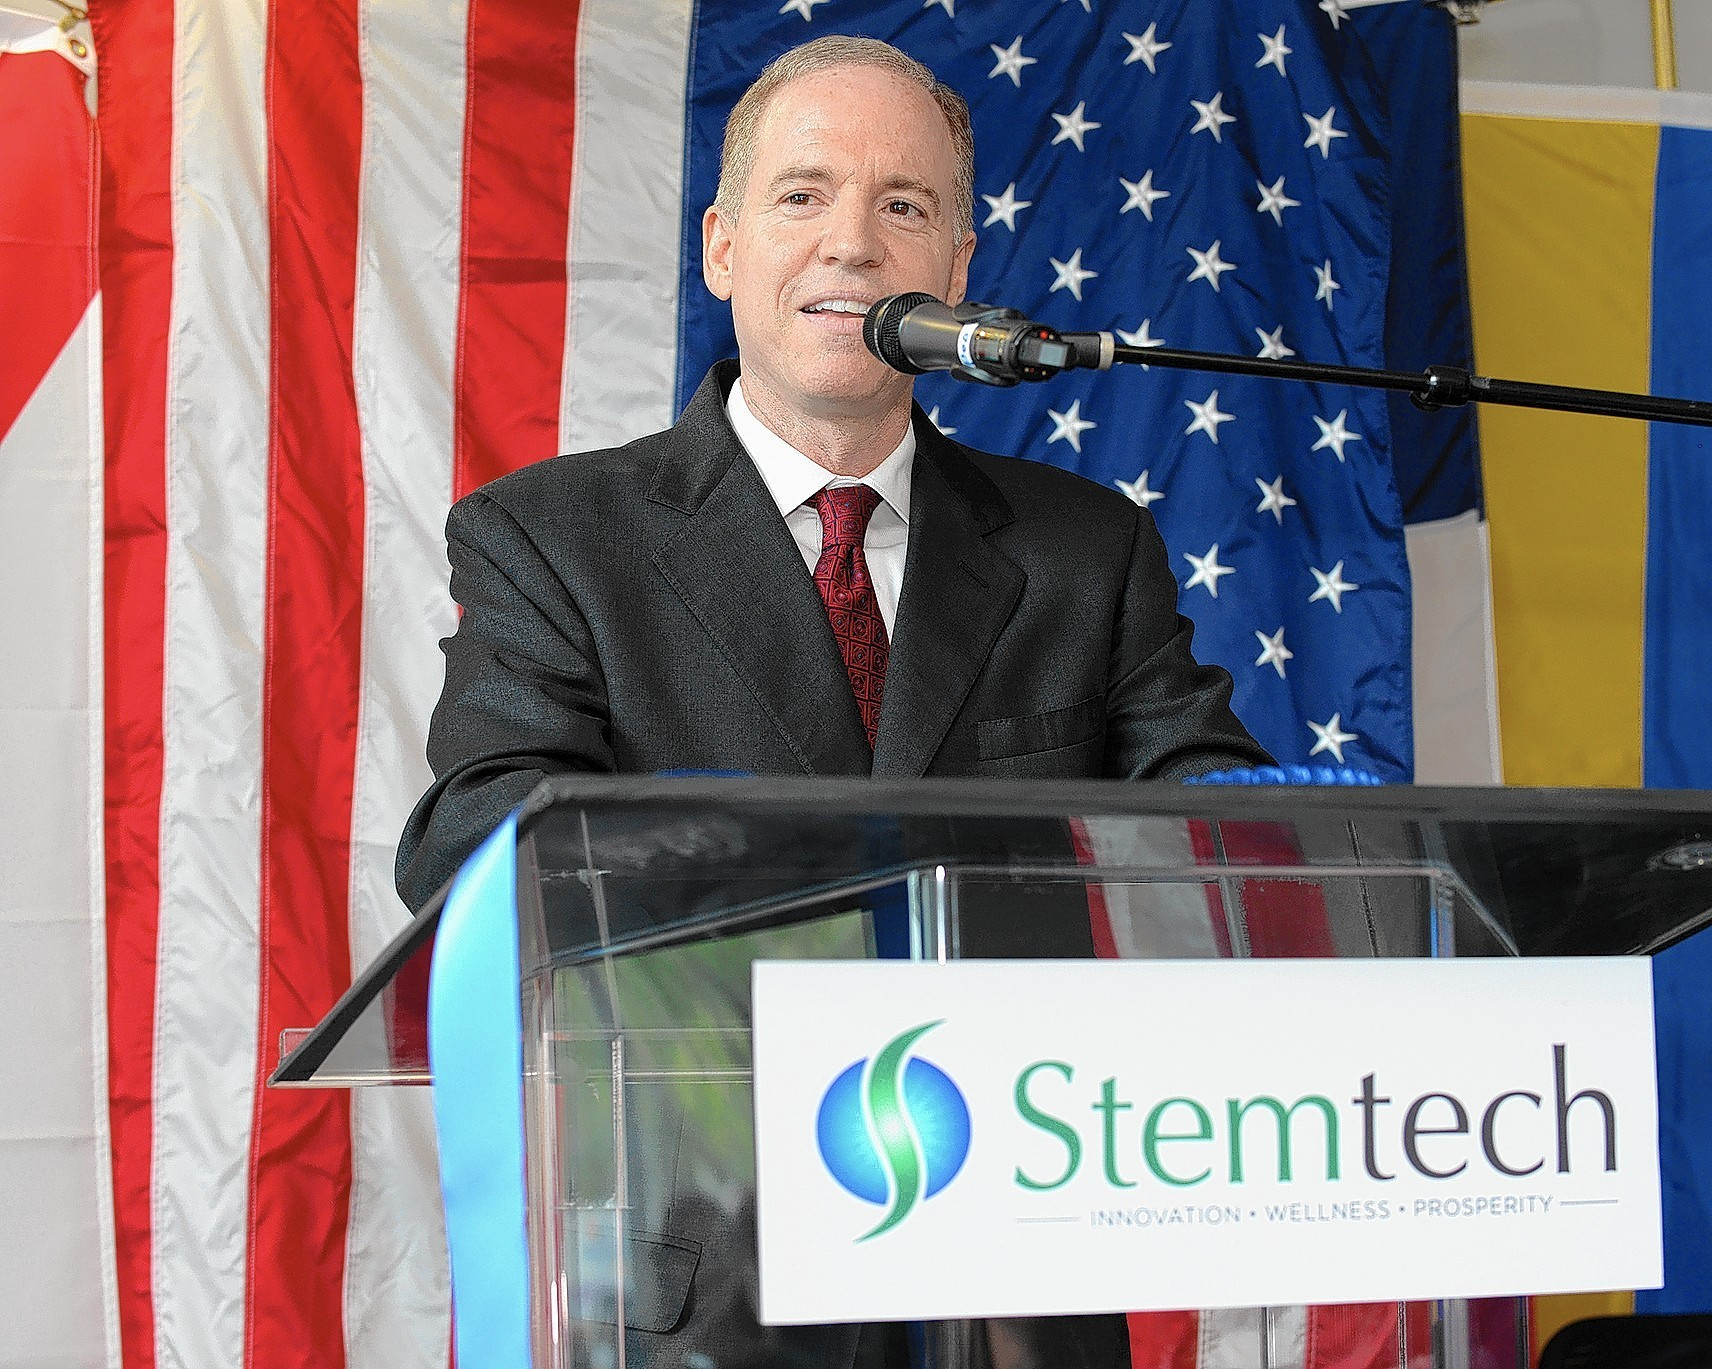 Ray Carter, Jr., President & CEO of Stemtech International, addresses the Sept. 12 ribbon cutting ceremony for the company's new world headquarters in Pembroke Pines.